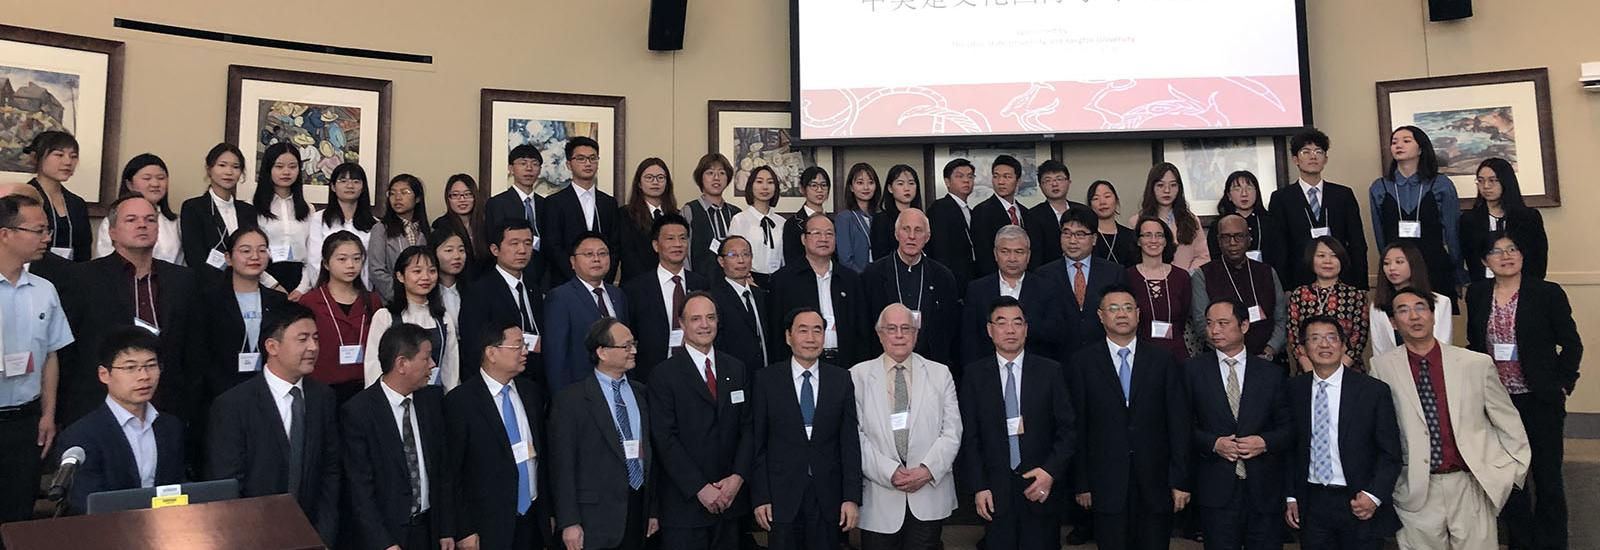 Group photo of attendees of the Chu Cultural Symposium